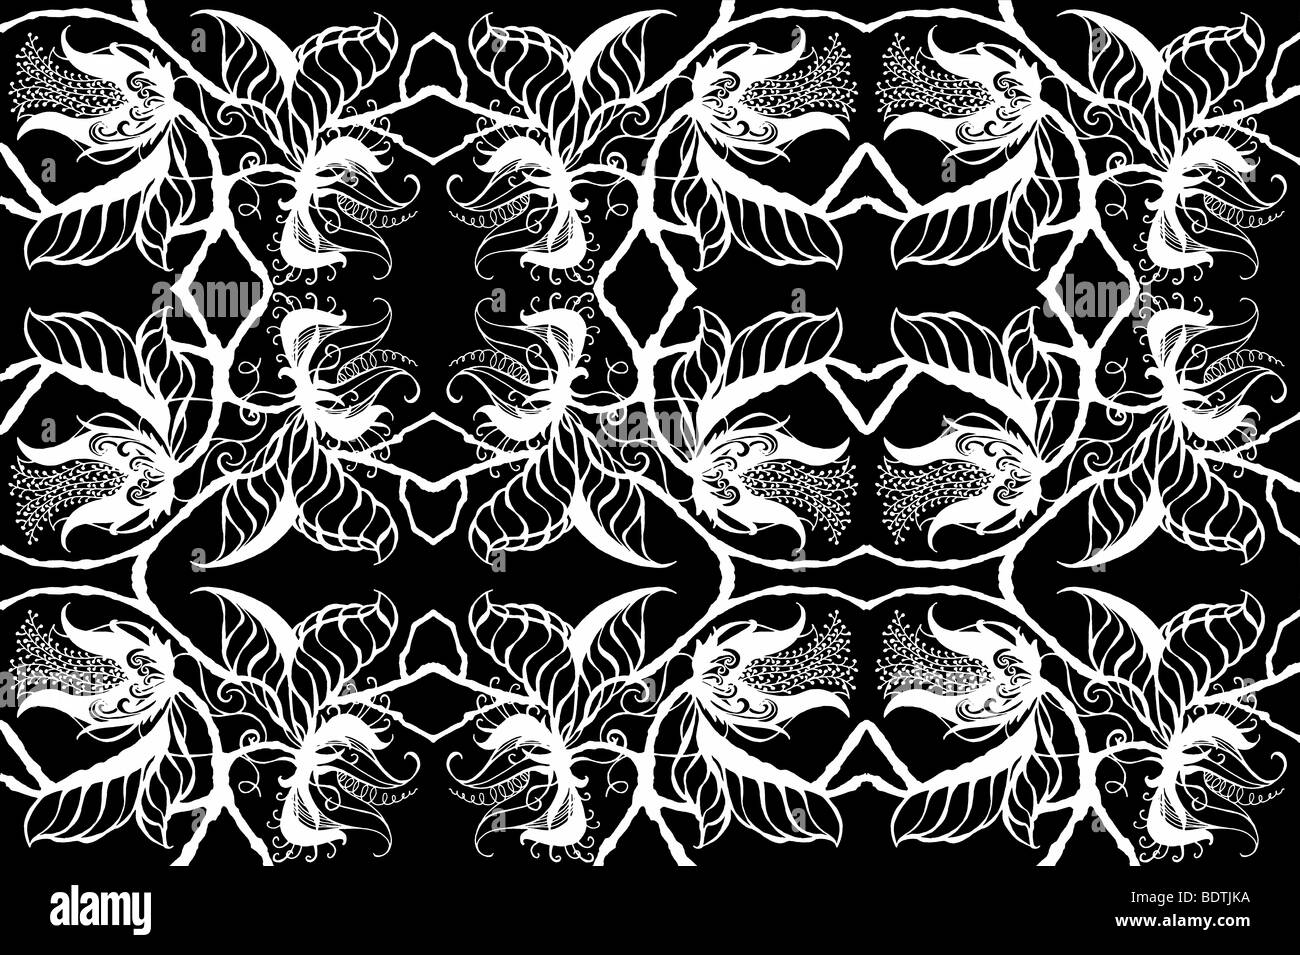 Repeated white on black drawing of exotic botanical blossoms, leaves and stems border exotic foliage botanical silhouette - Stock Image